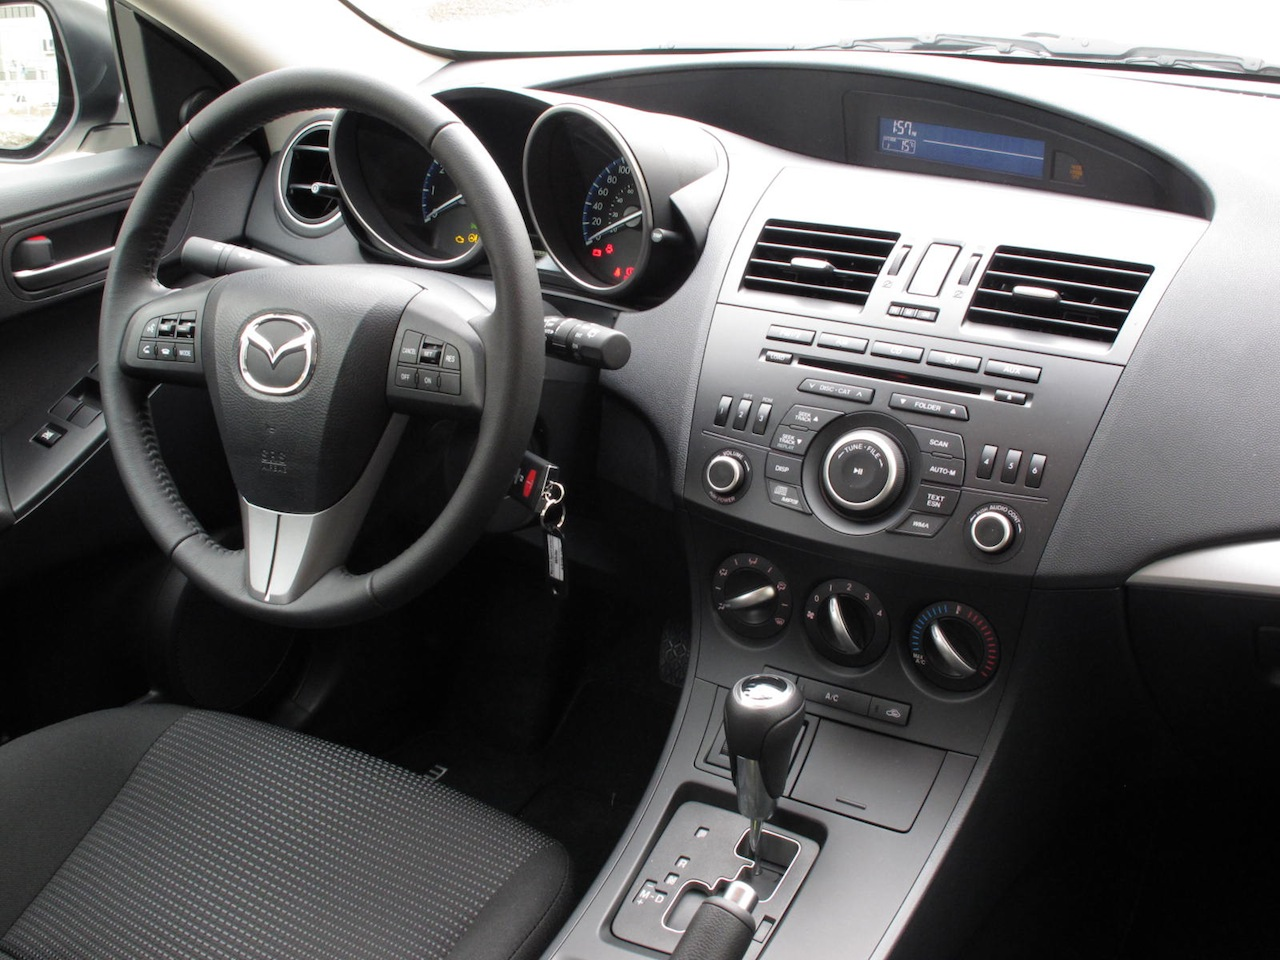 2012 Mazda3 Gs Review Cars Photos Test Drives And